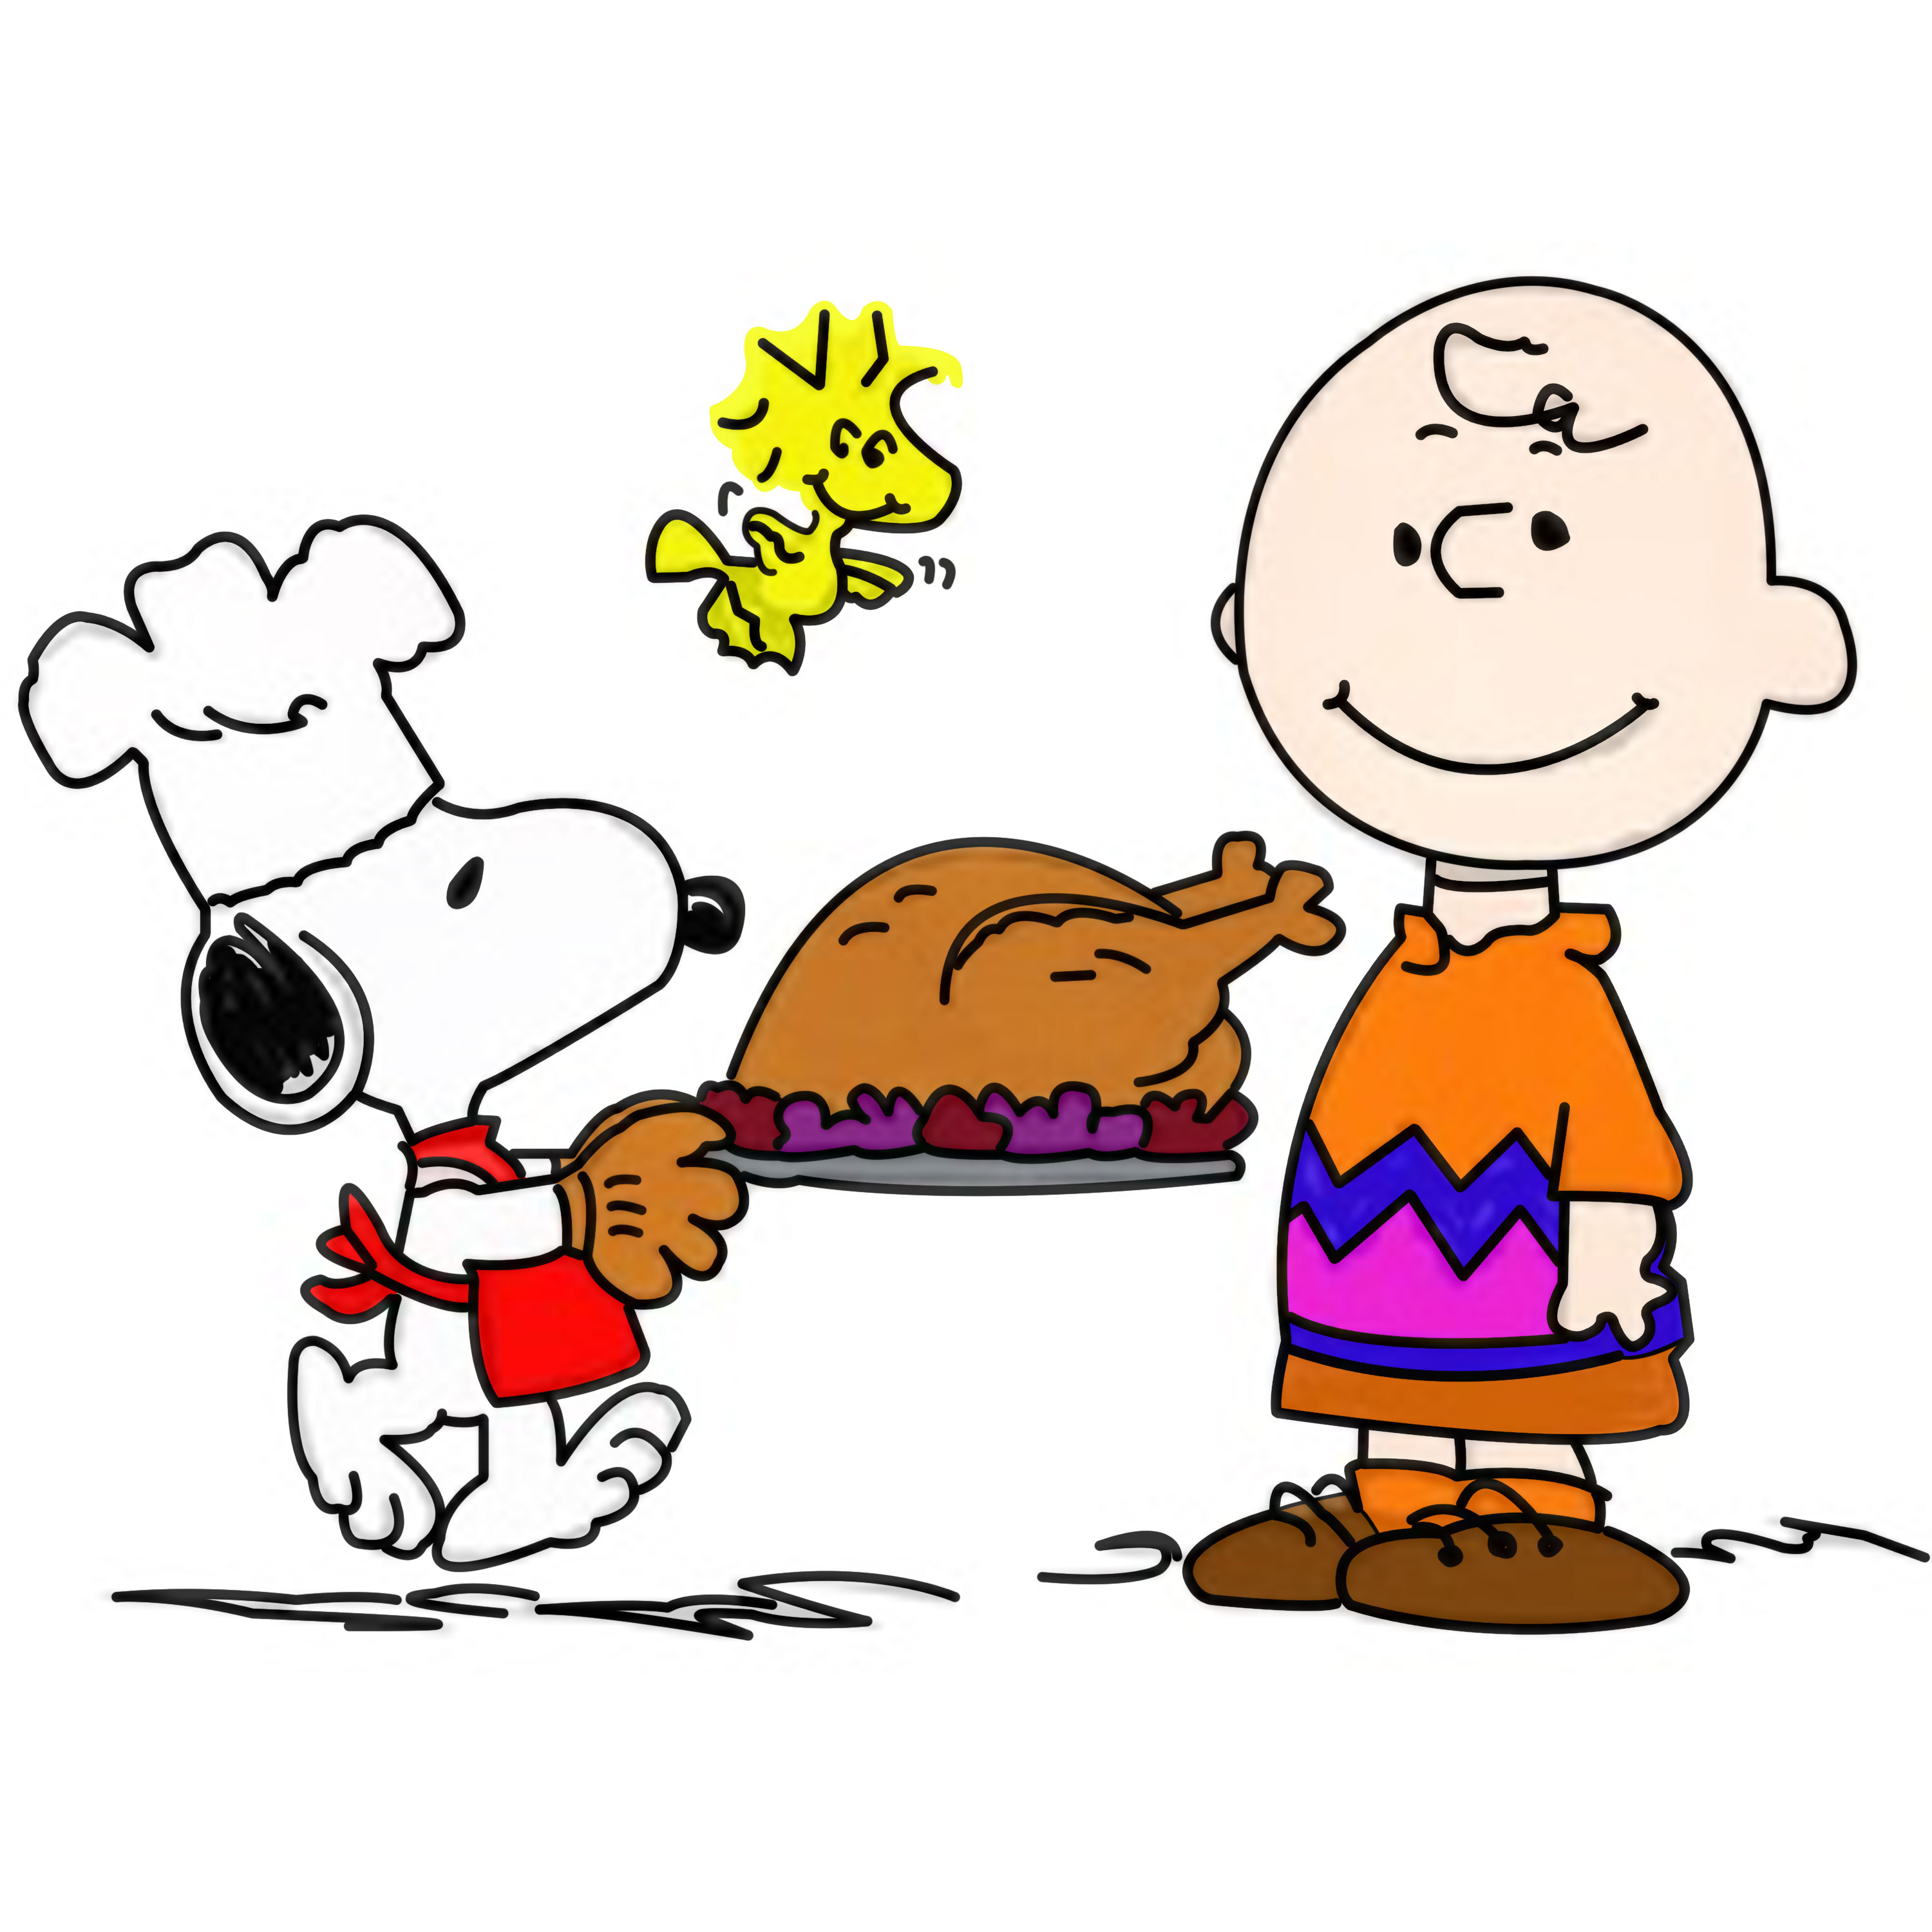 Clipart snoopy thanksgiving clipart Free Snoopy Thanksgiving Cliparts, Download Free Clip Art, Free Clip ... clipart